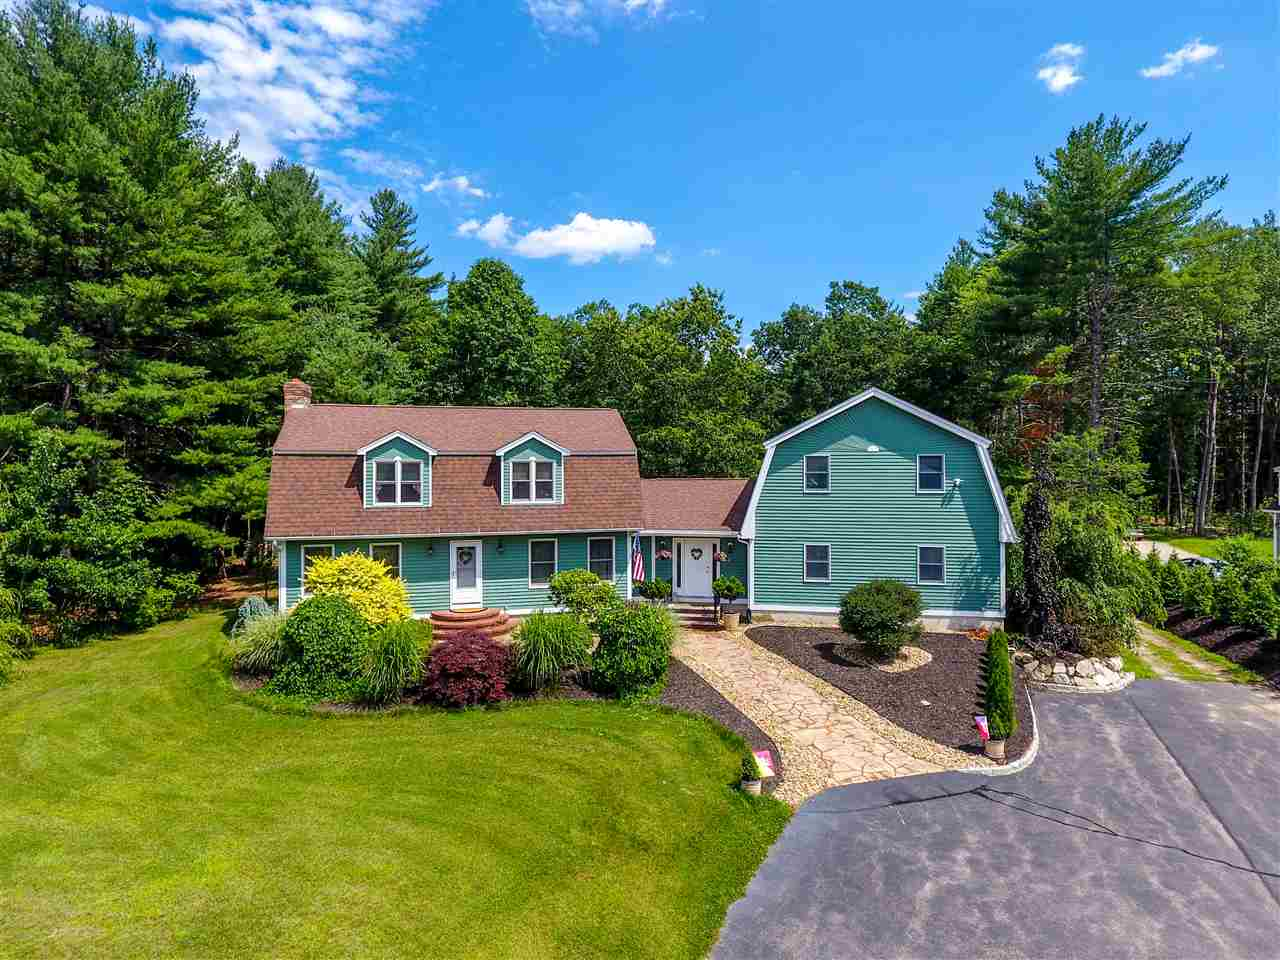 Photo of 125 Lowell Road Windham NH 03087